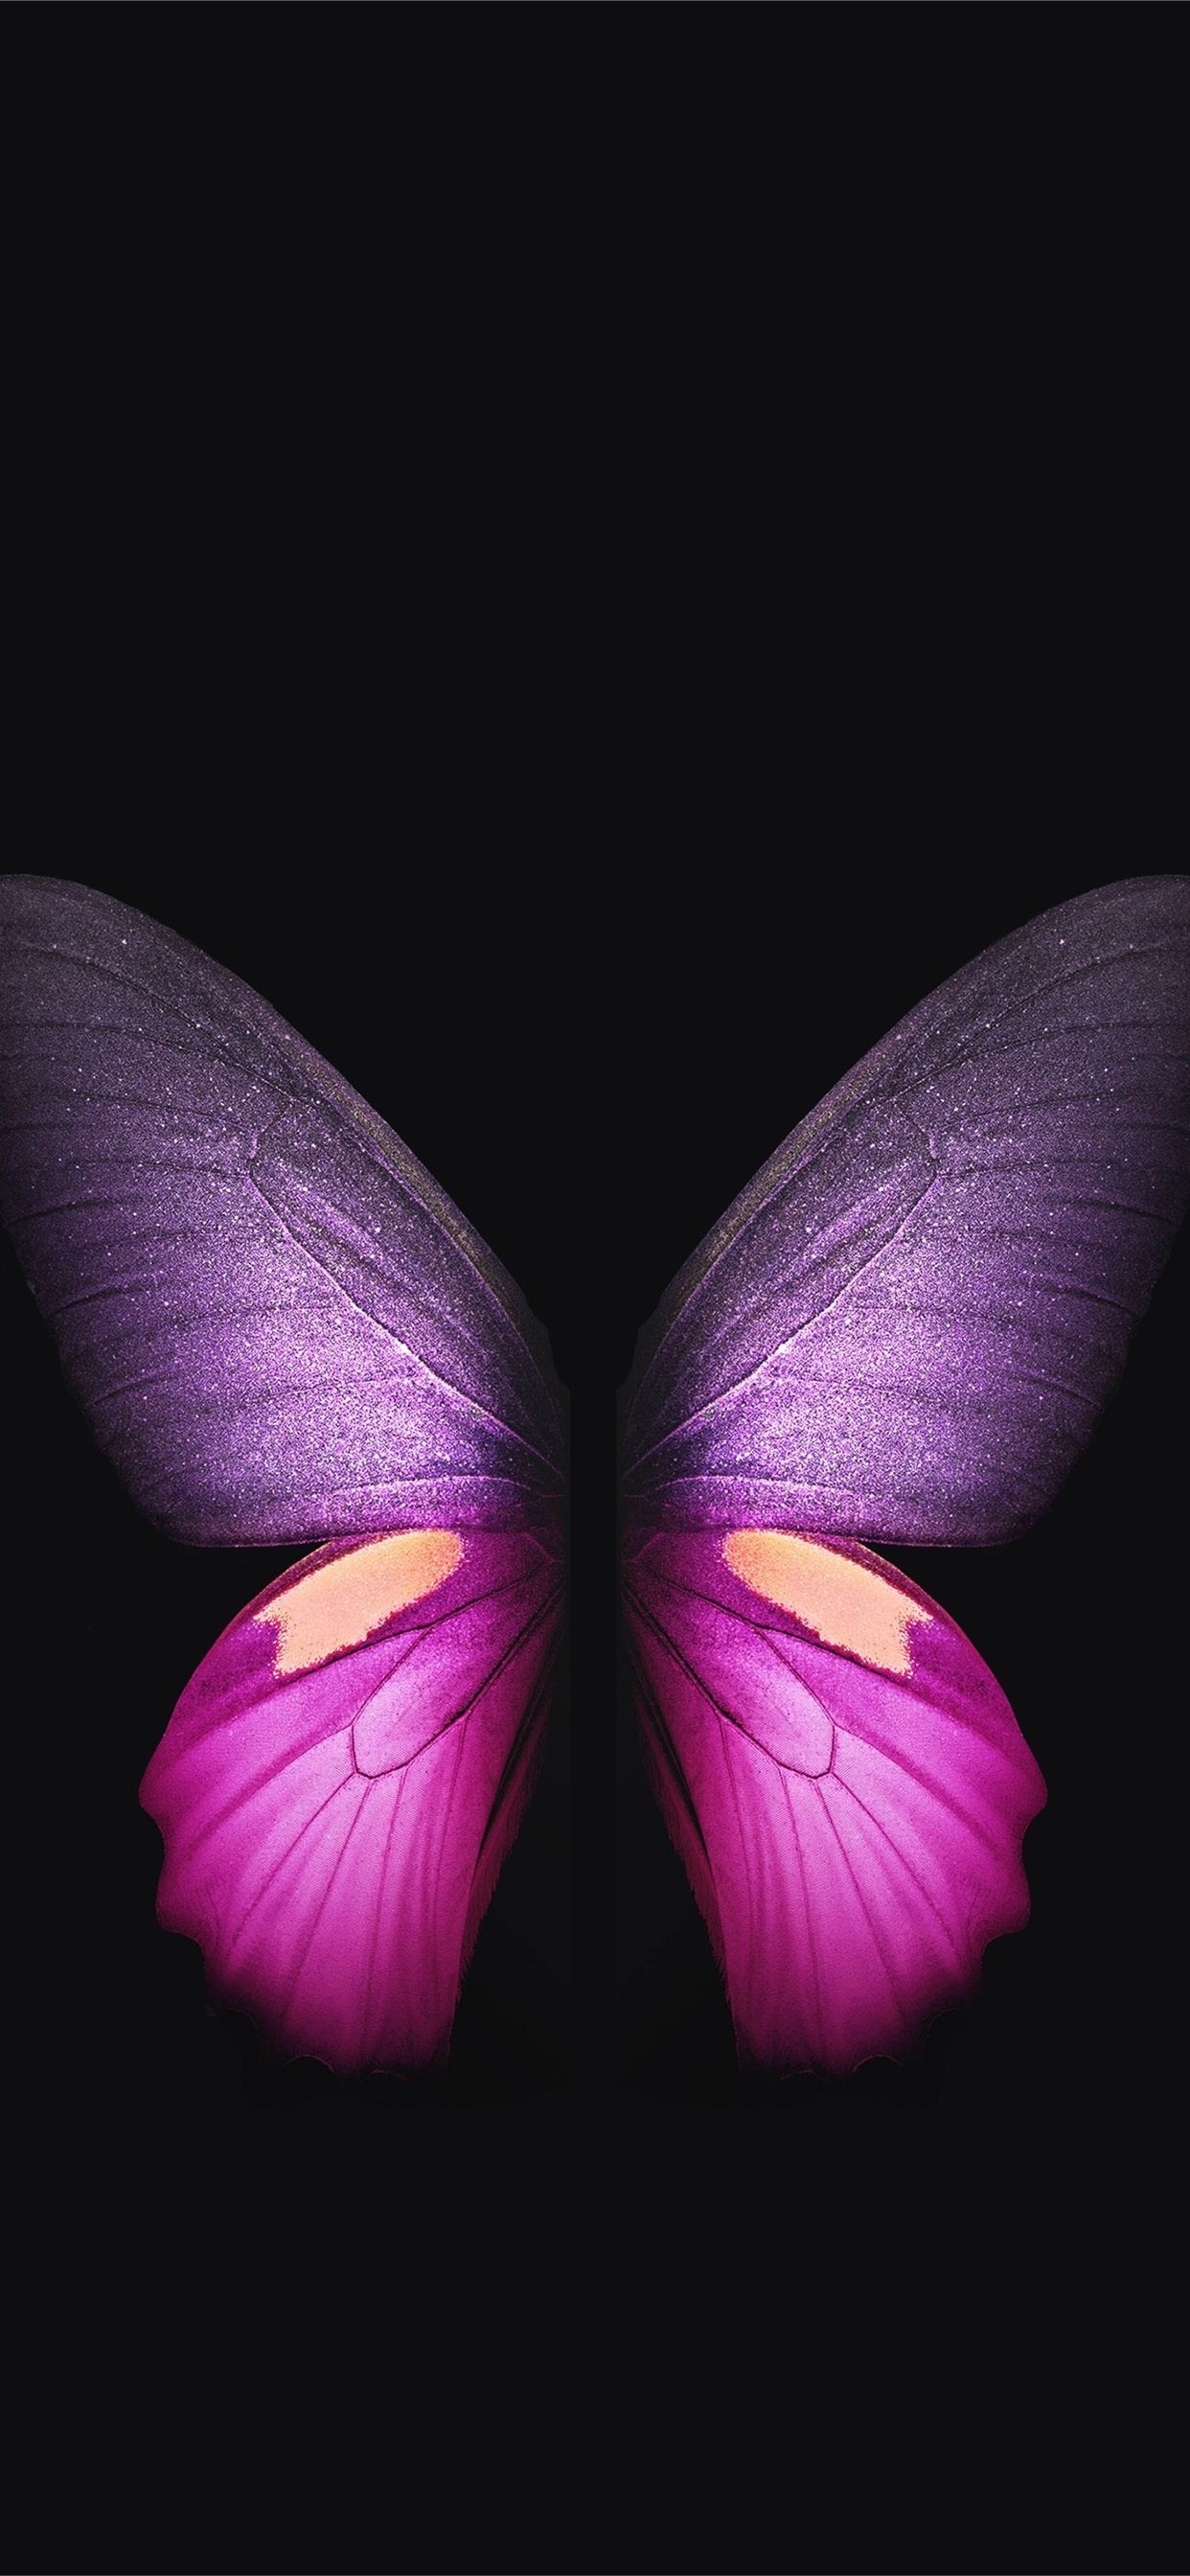 Butterfly Wallpaper Iphone 11 Pro Max